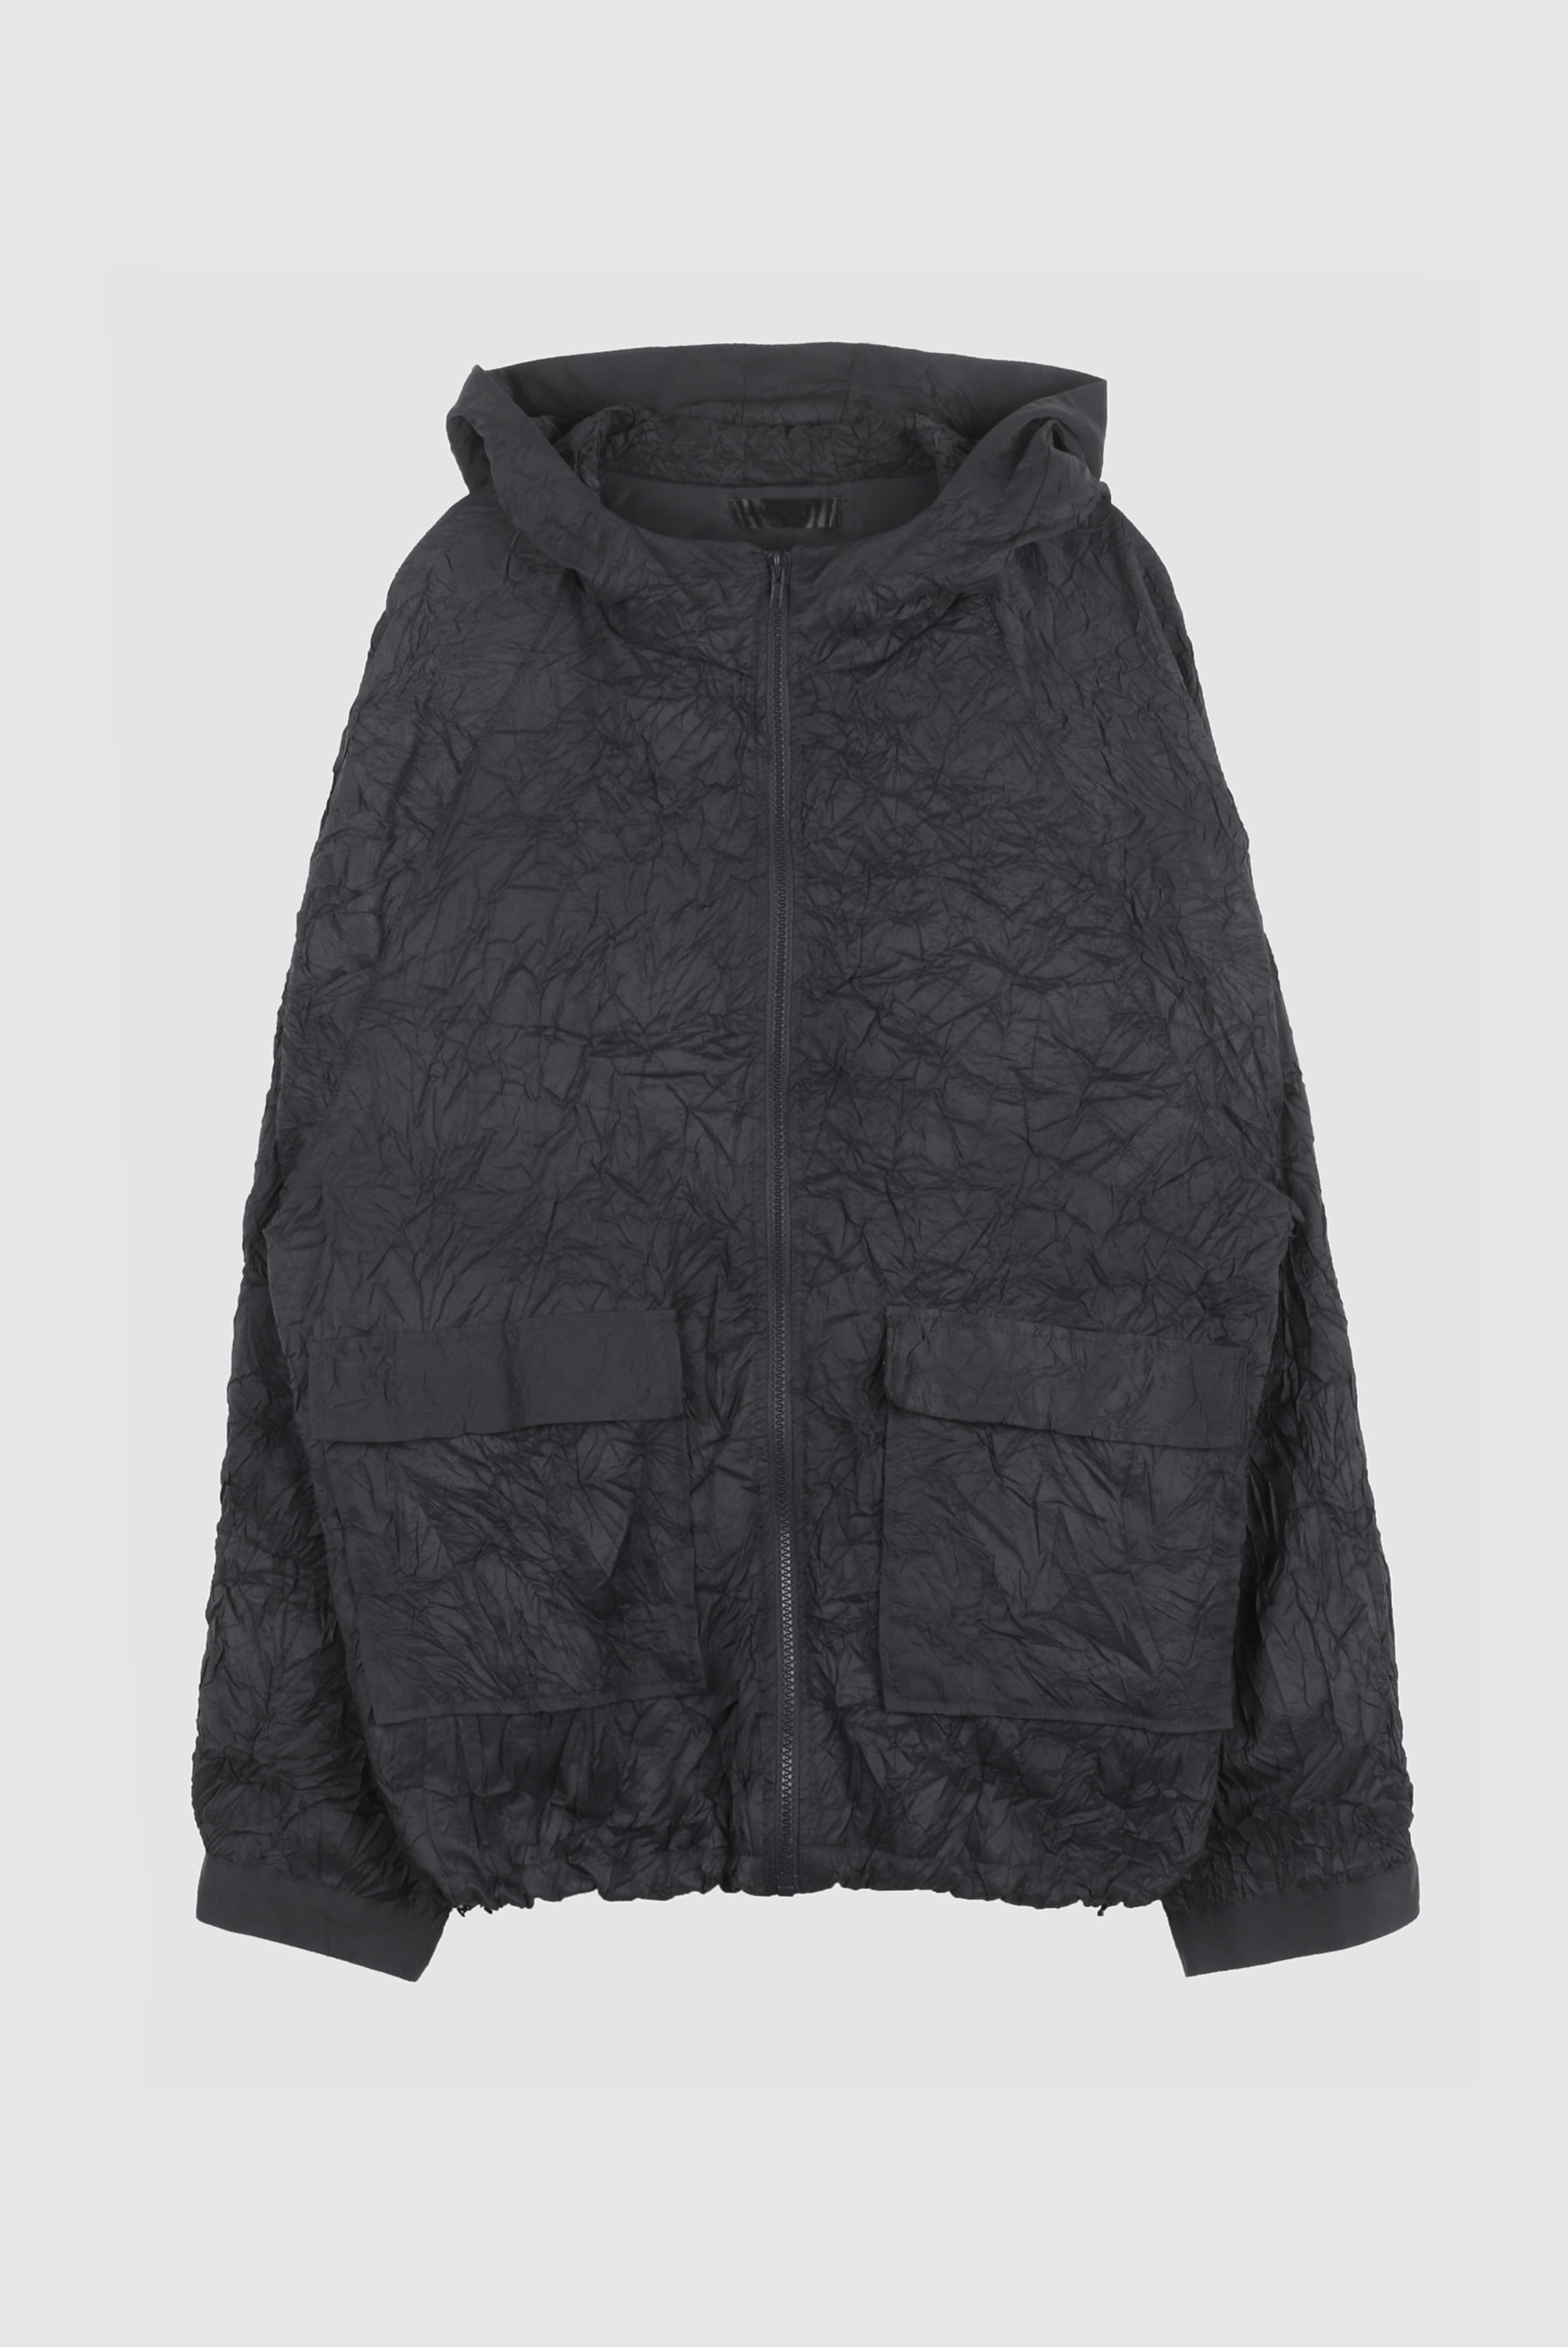 Wrinkle_Creezed Hood Zip-up